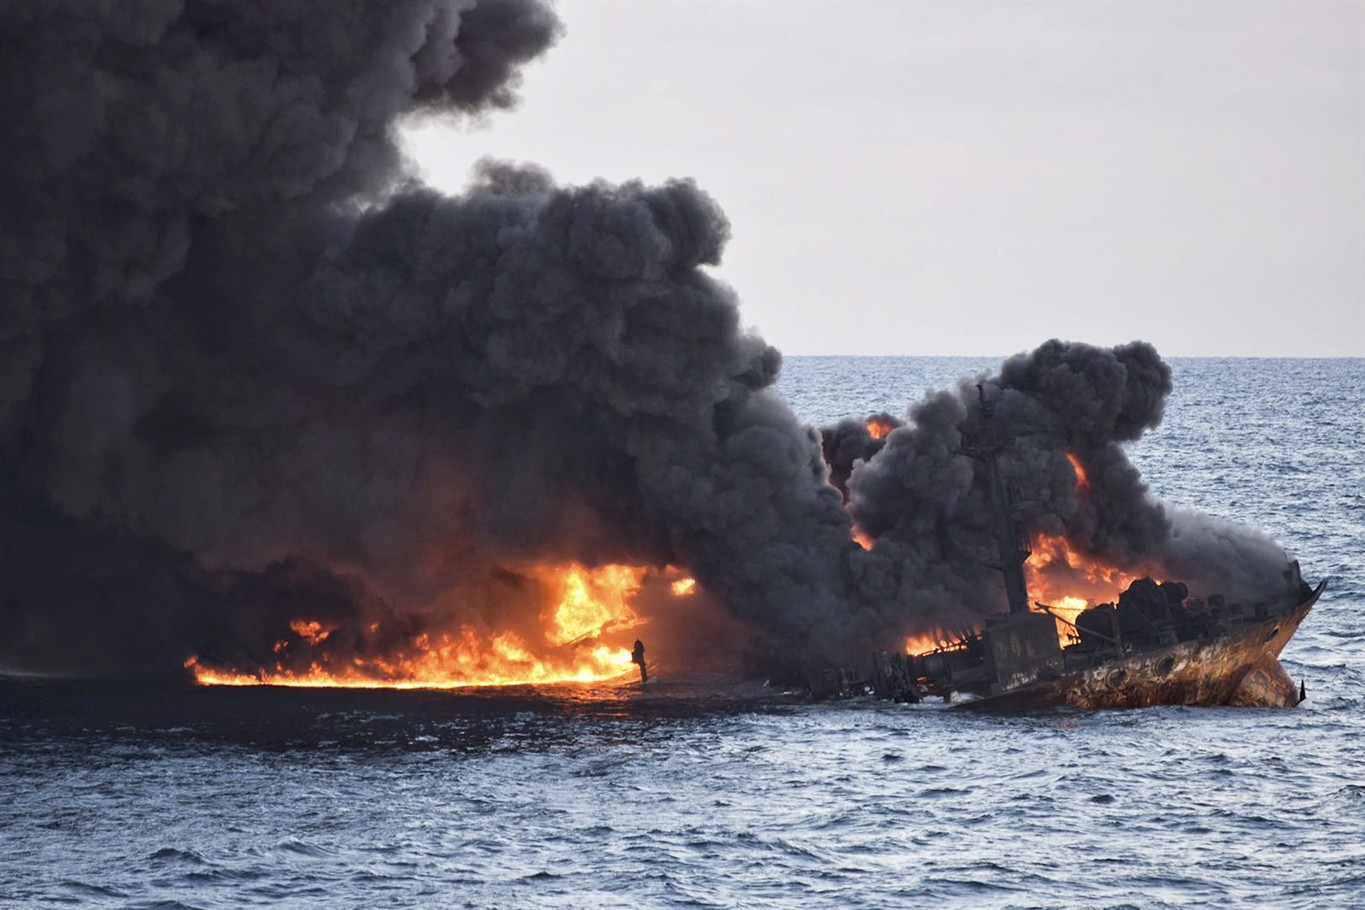 Blazing tanker sinks with 'no hope' for crew